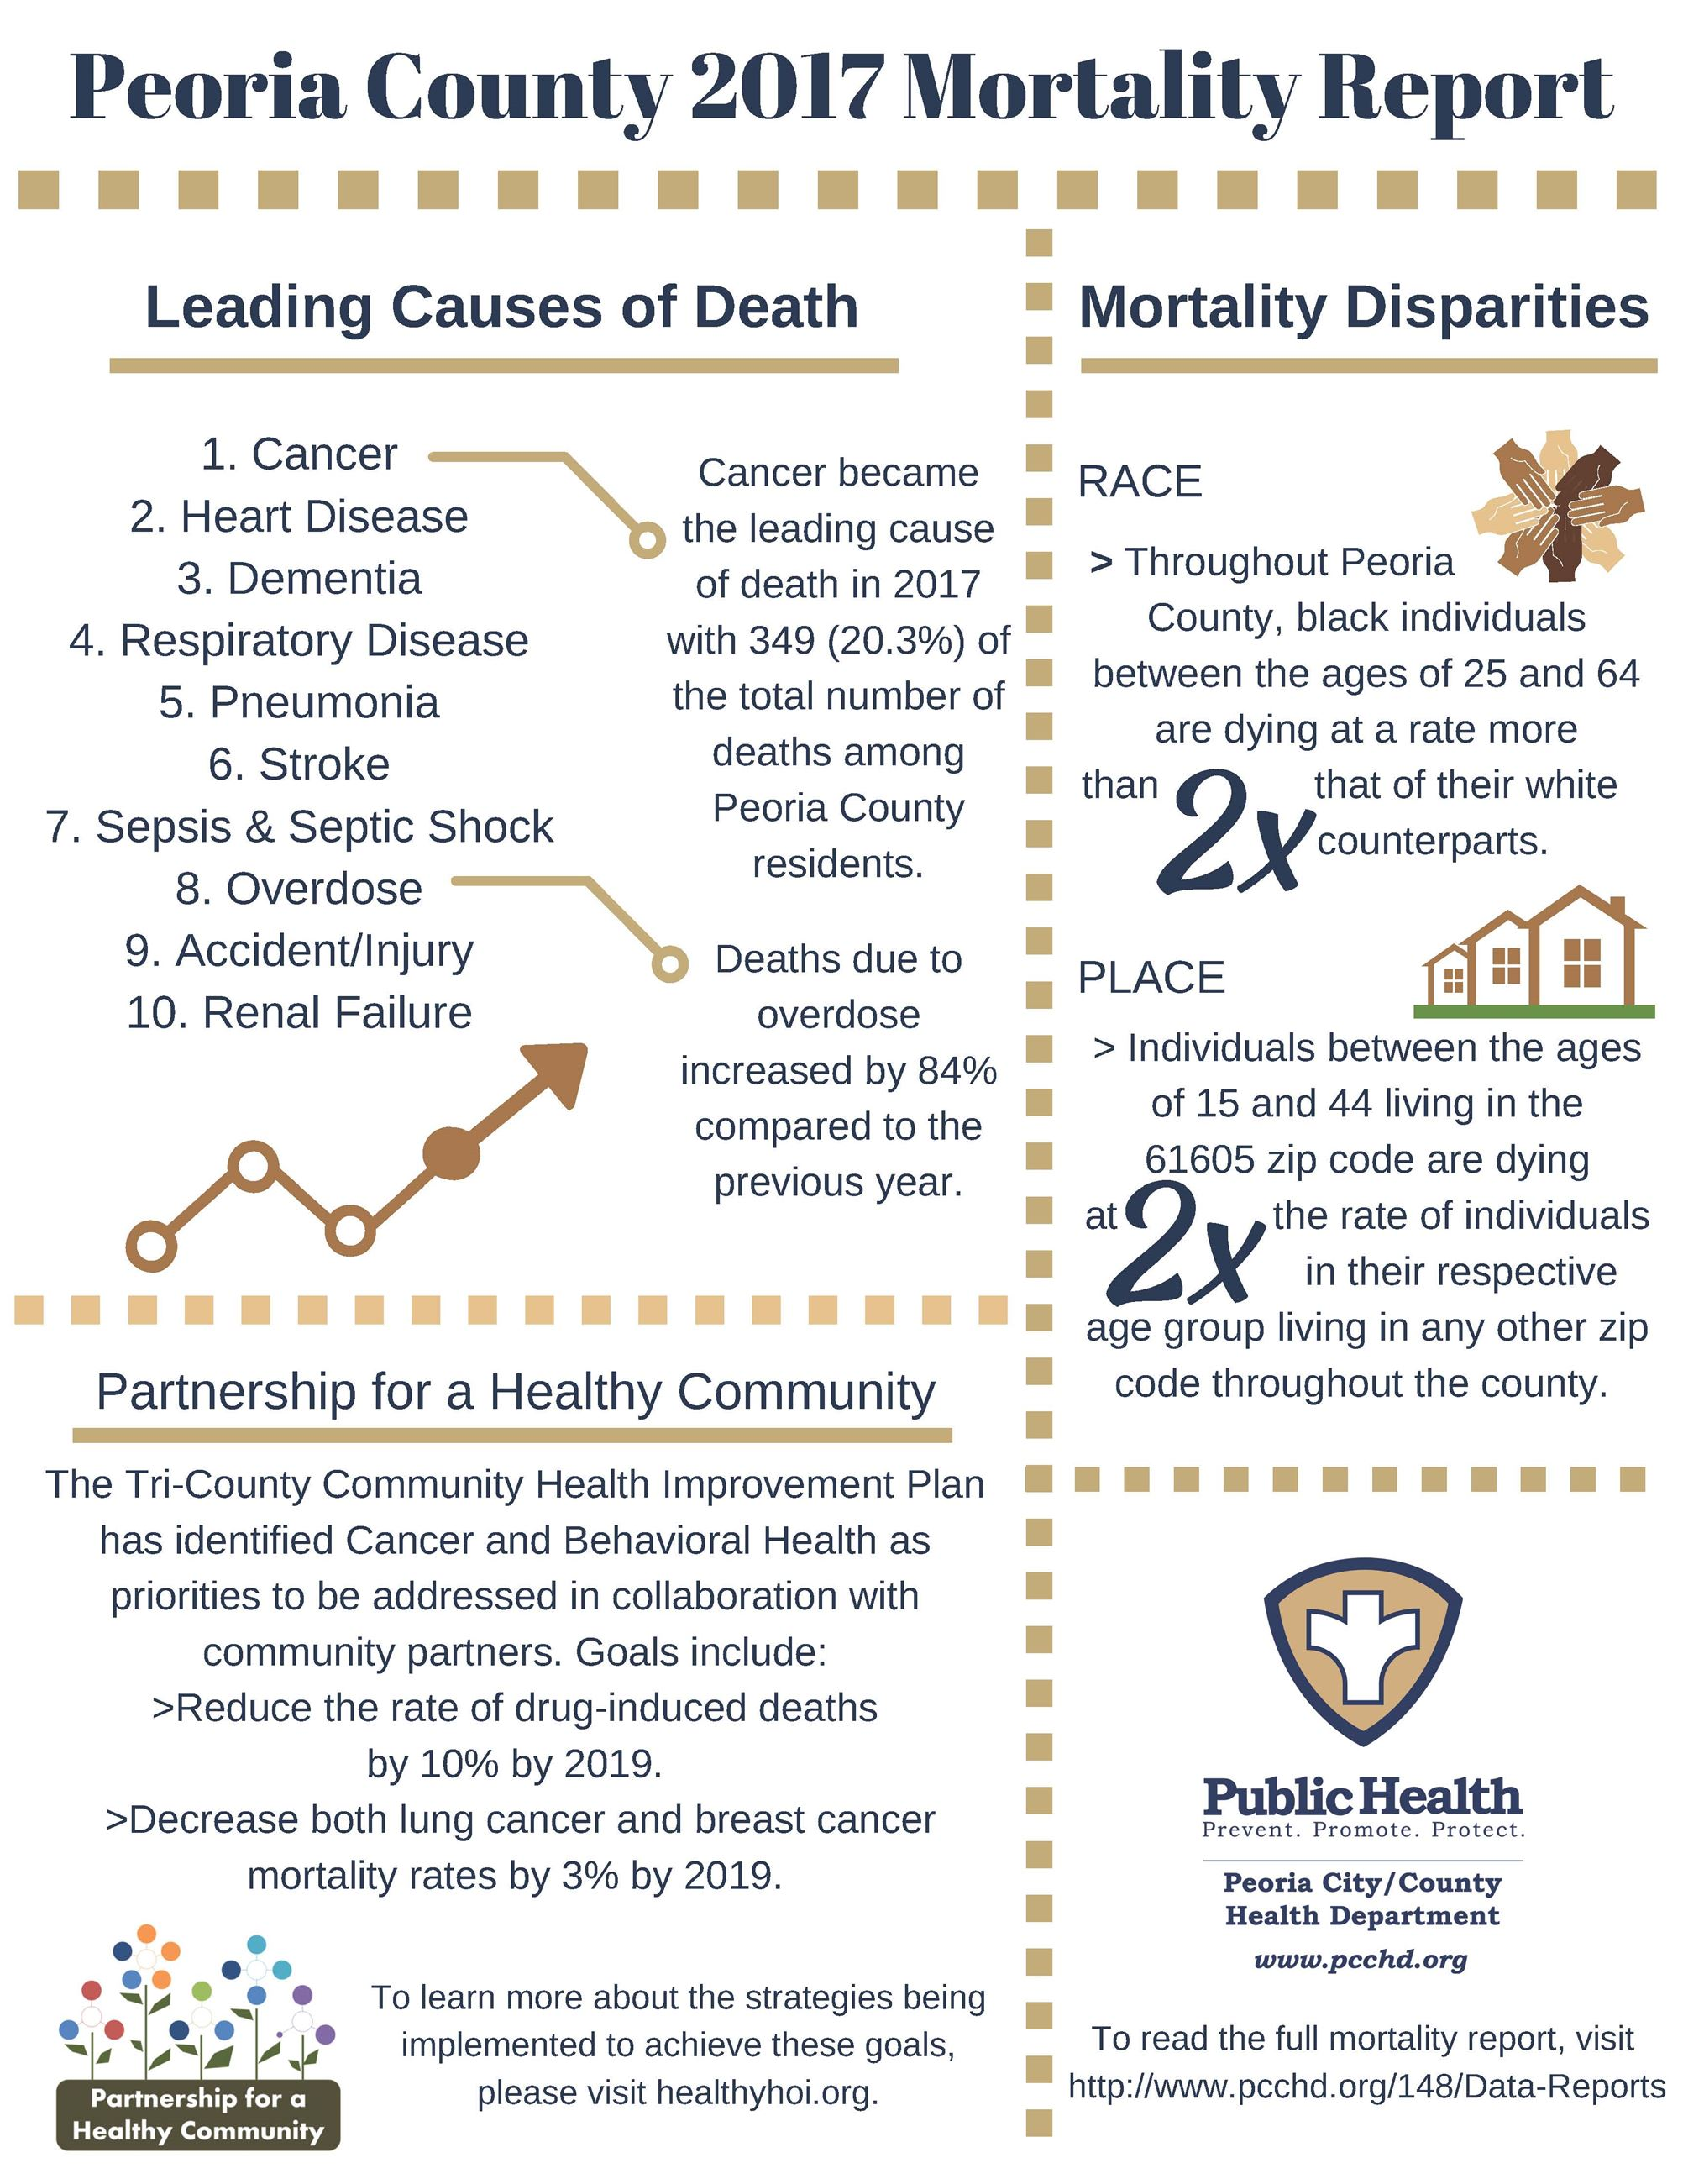 Peoria.County.2017.Mortality.Report.Infographic